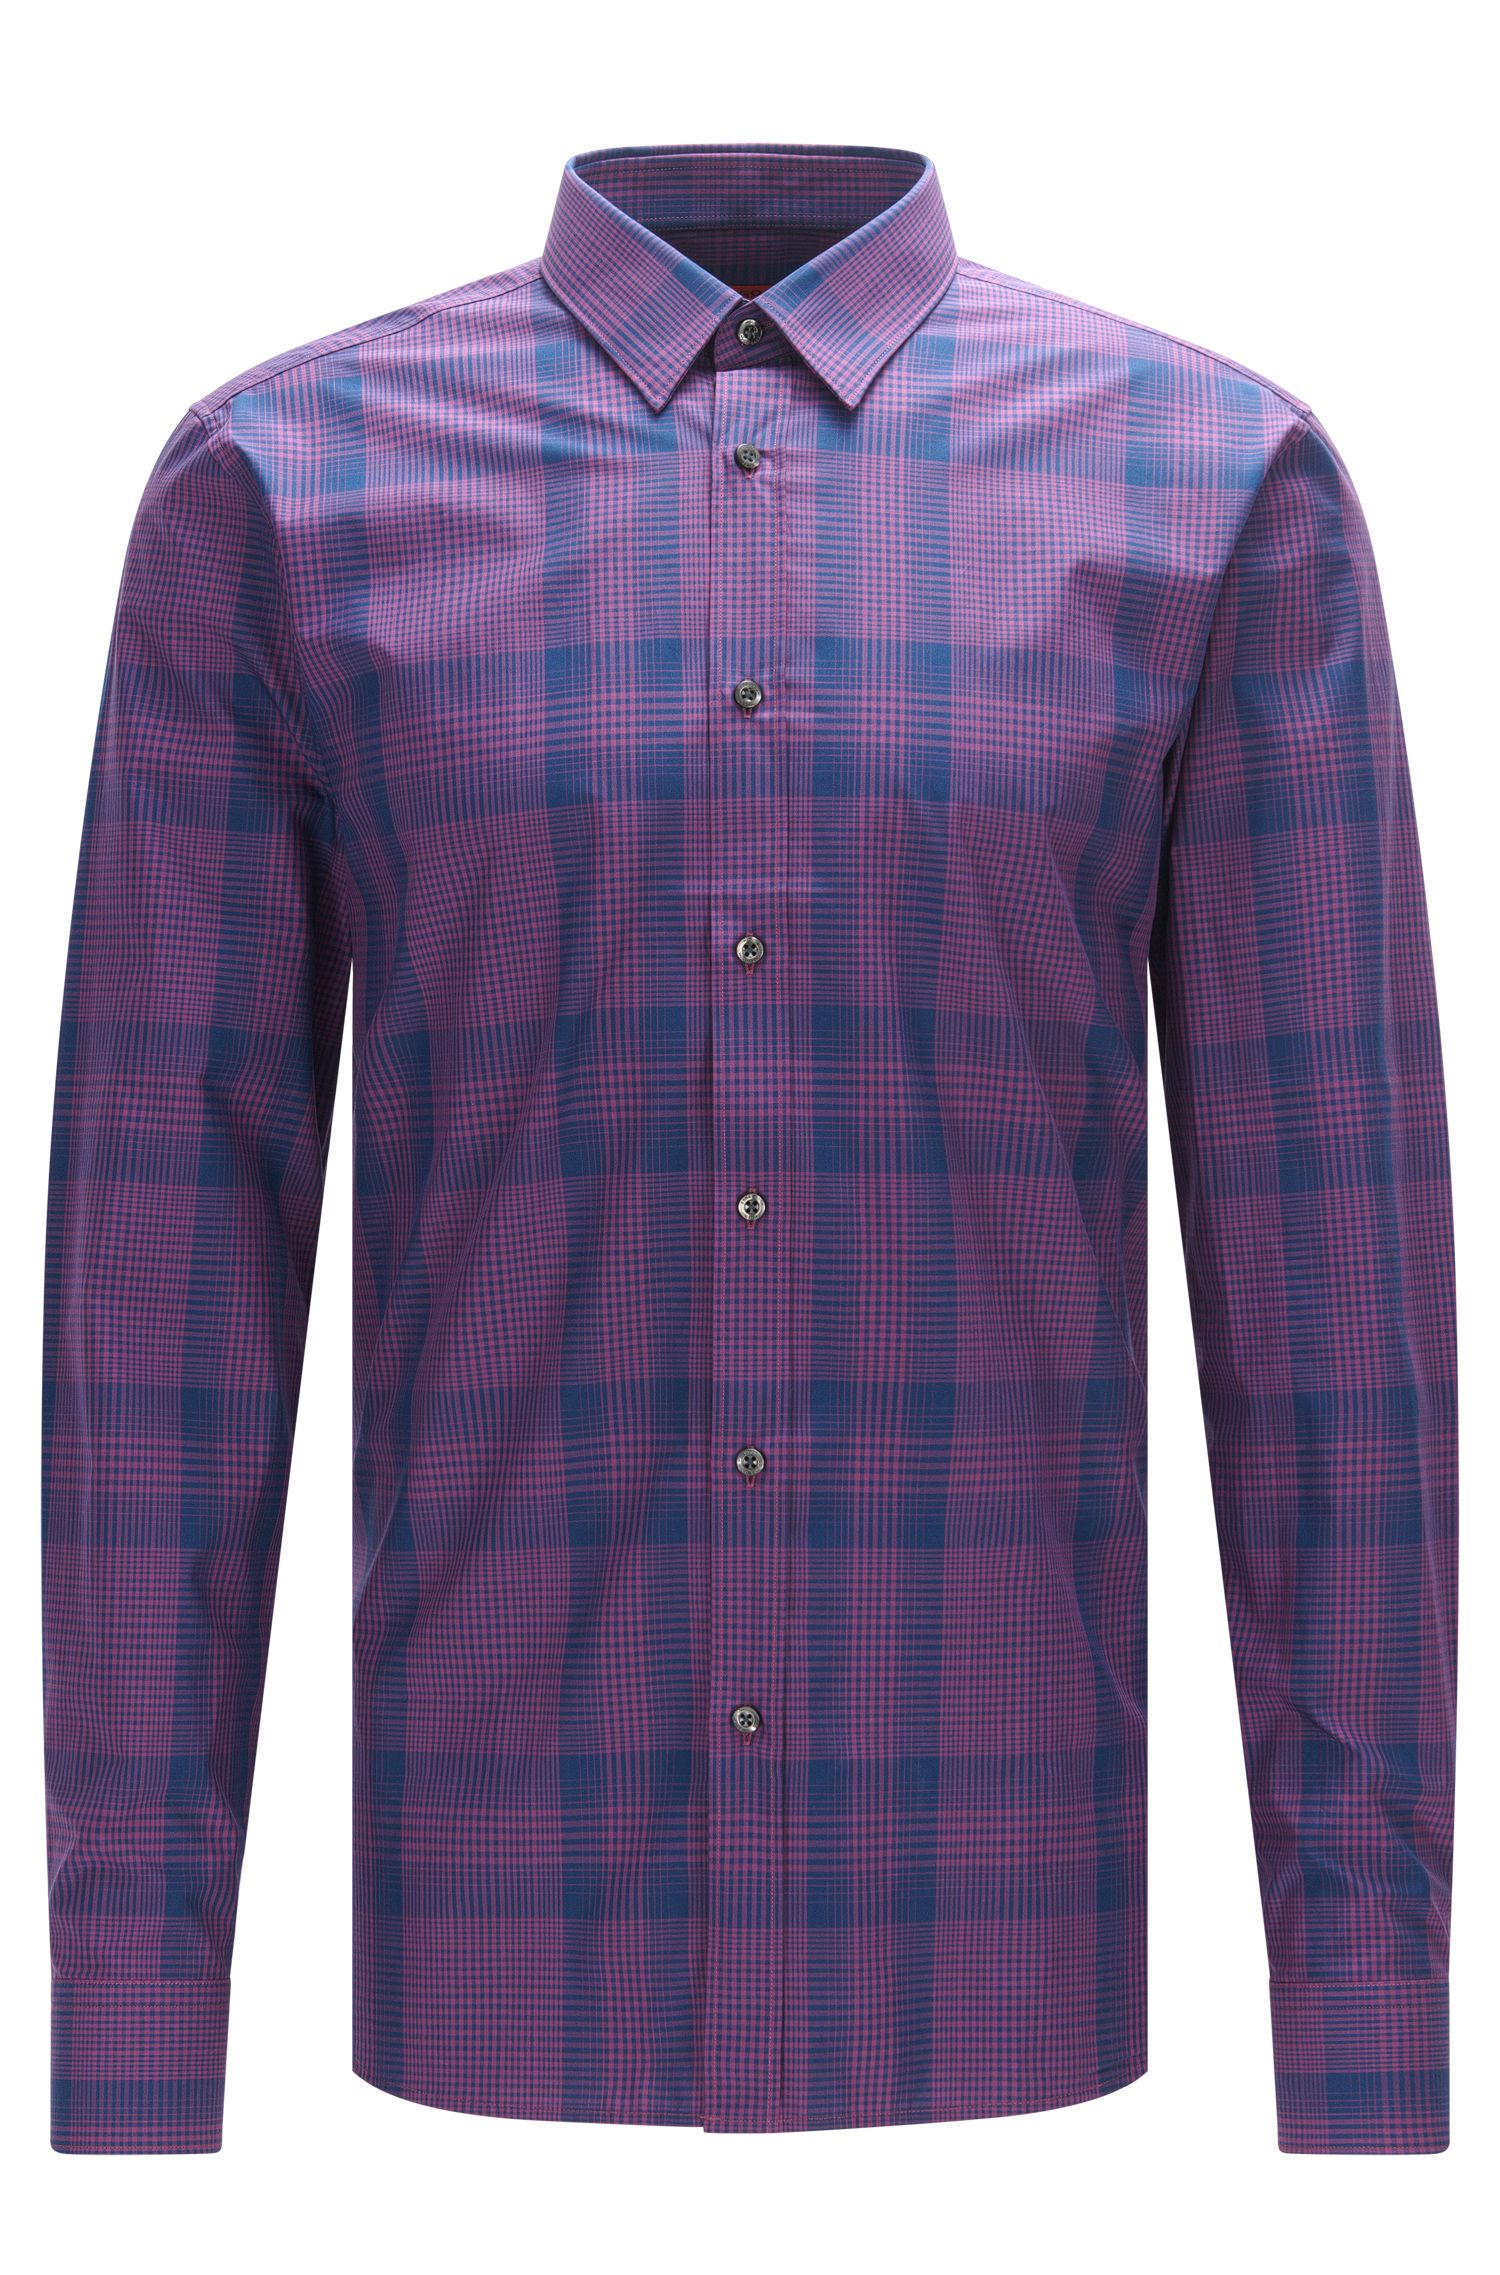 'Elisha' | Extra Slim Fit, Cotton Button Down Shirt